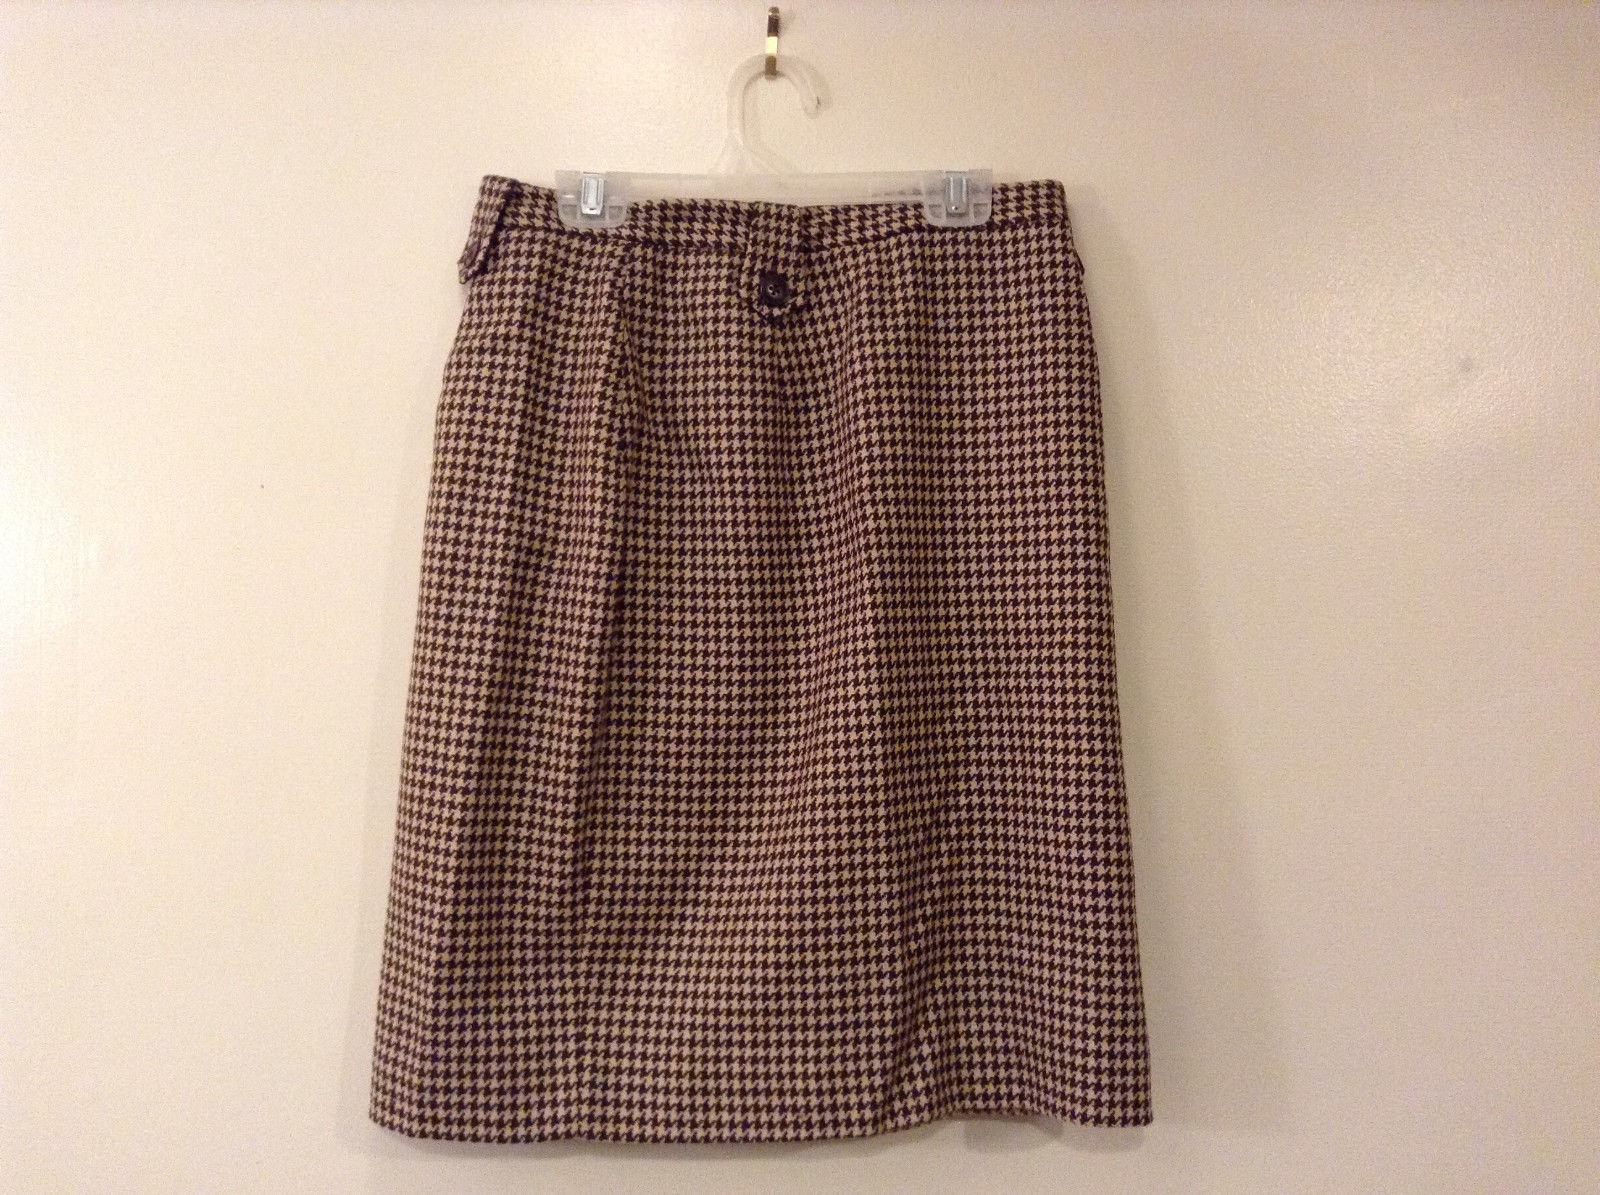 Banana Republic Women's Size 6 Mini Skirt Preppy Houndstooth Brown & Beige Wool